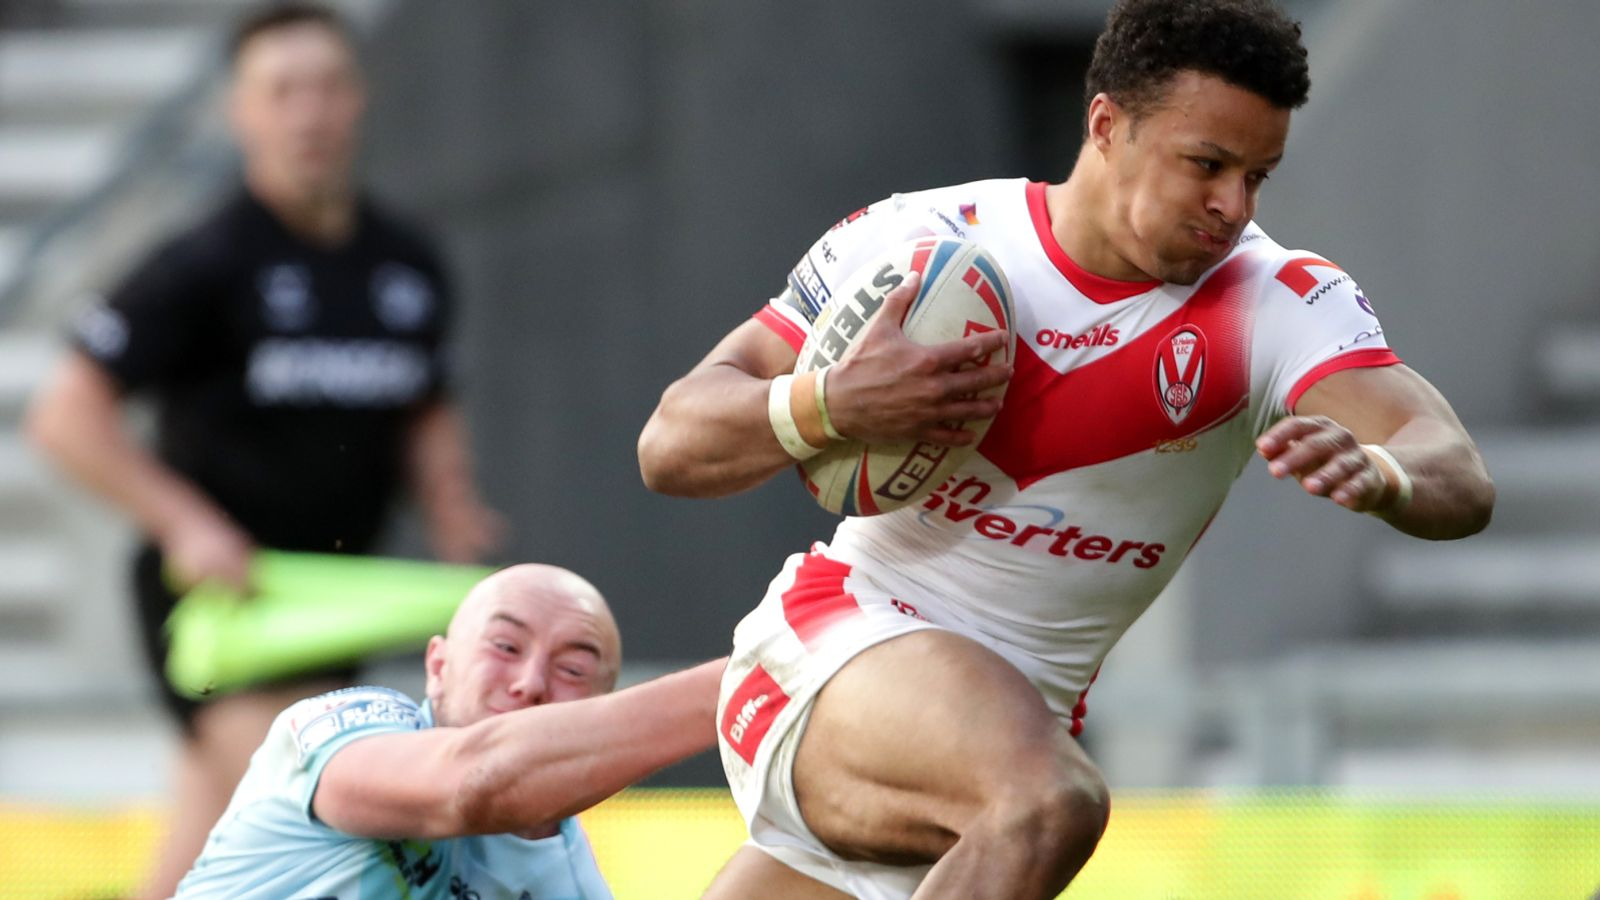 St Helens 34-6 Wakefield: Super League champions cut loose in second half to register big win